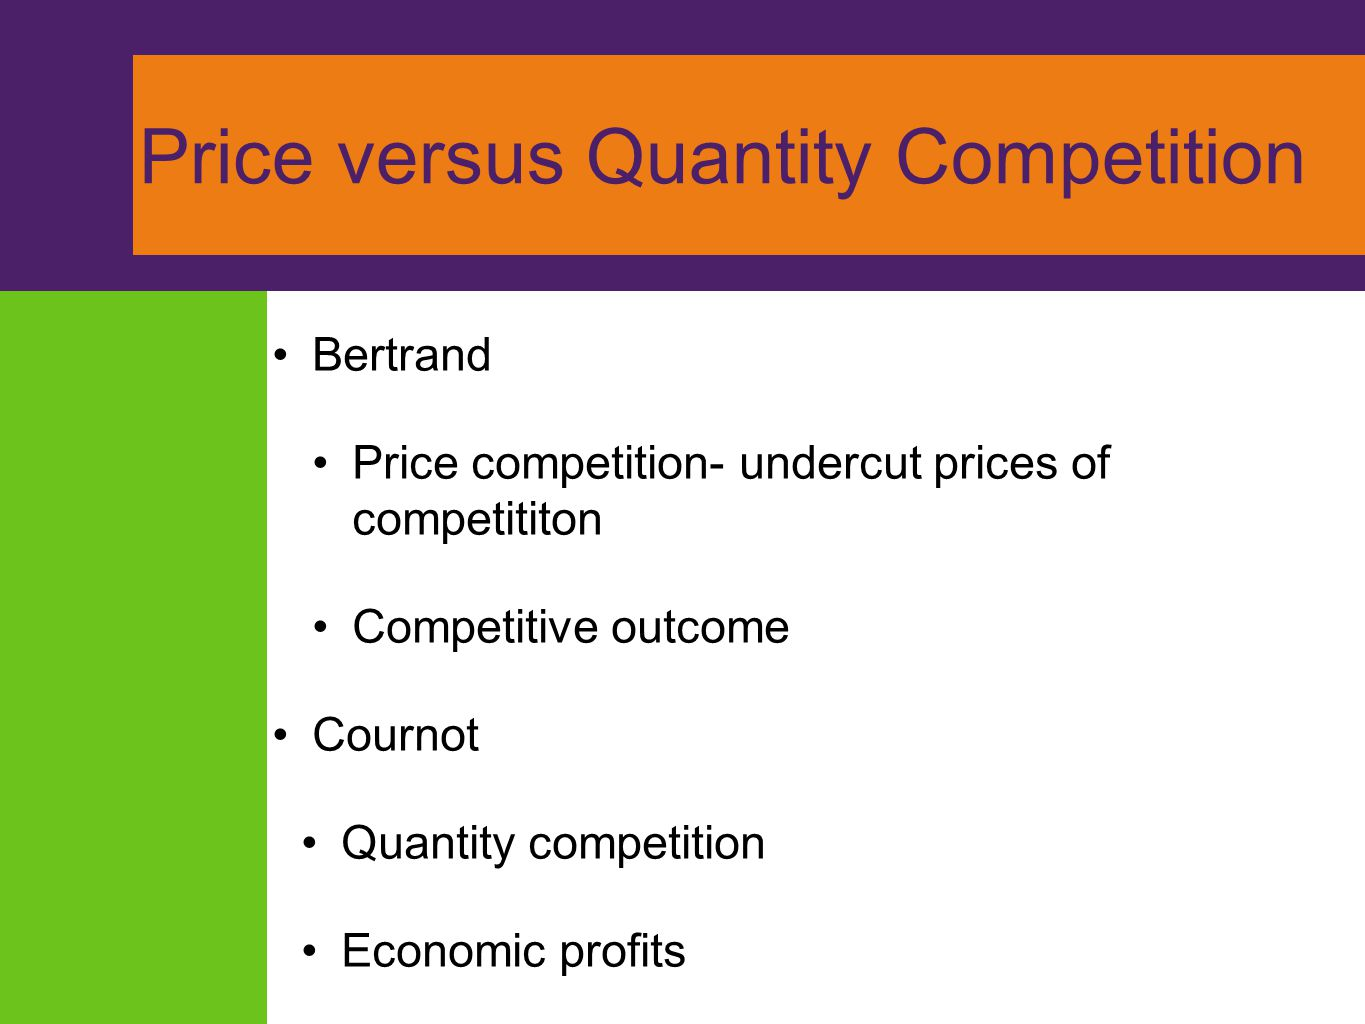 Price versus Quantity Competition Bertrand Price competition- undercut prices of competititon Competitive outcome Cournot Quantity competition Economi